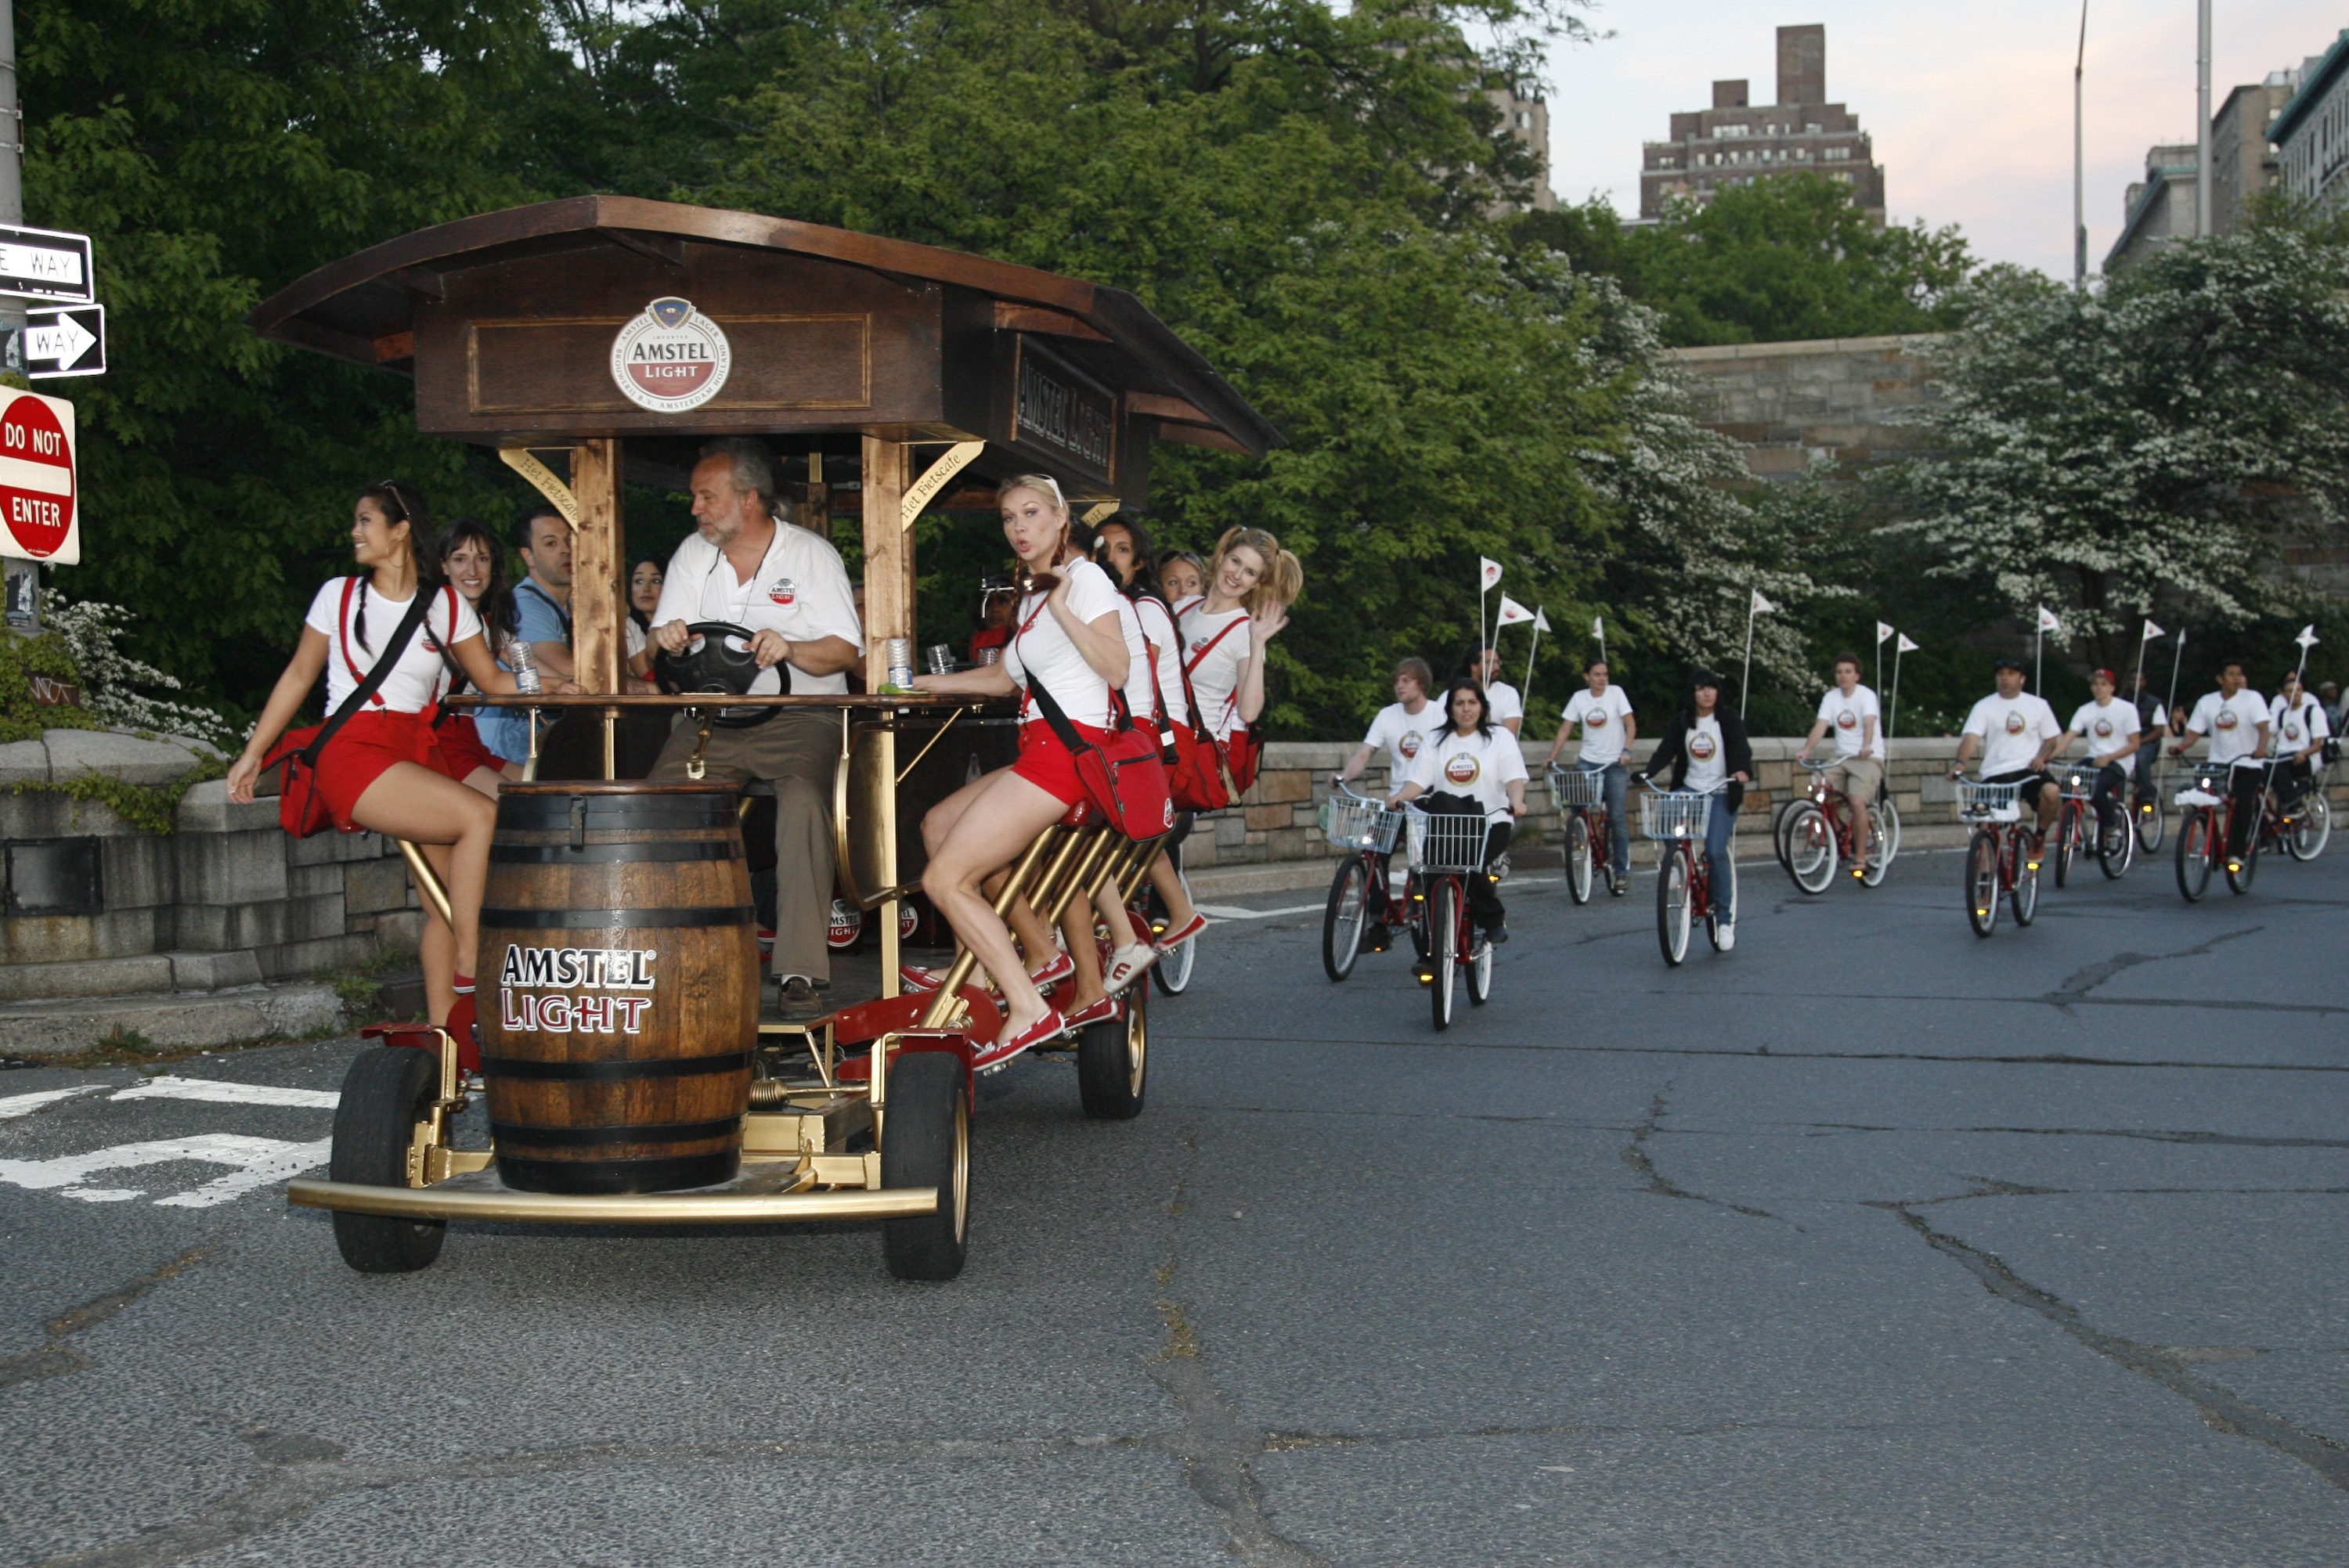 Where Can You Visit A Sex Museum And Ride A Beer Bicycle